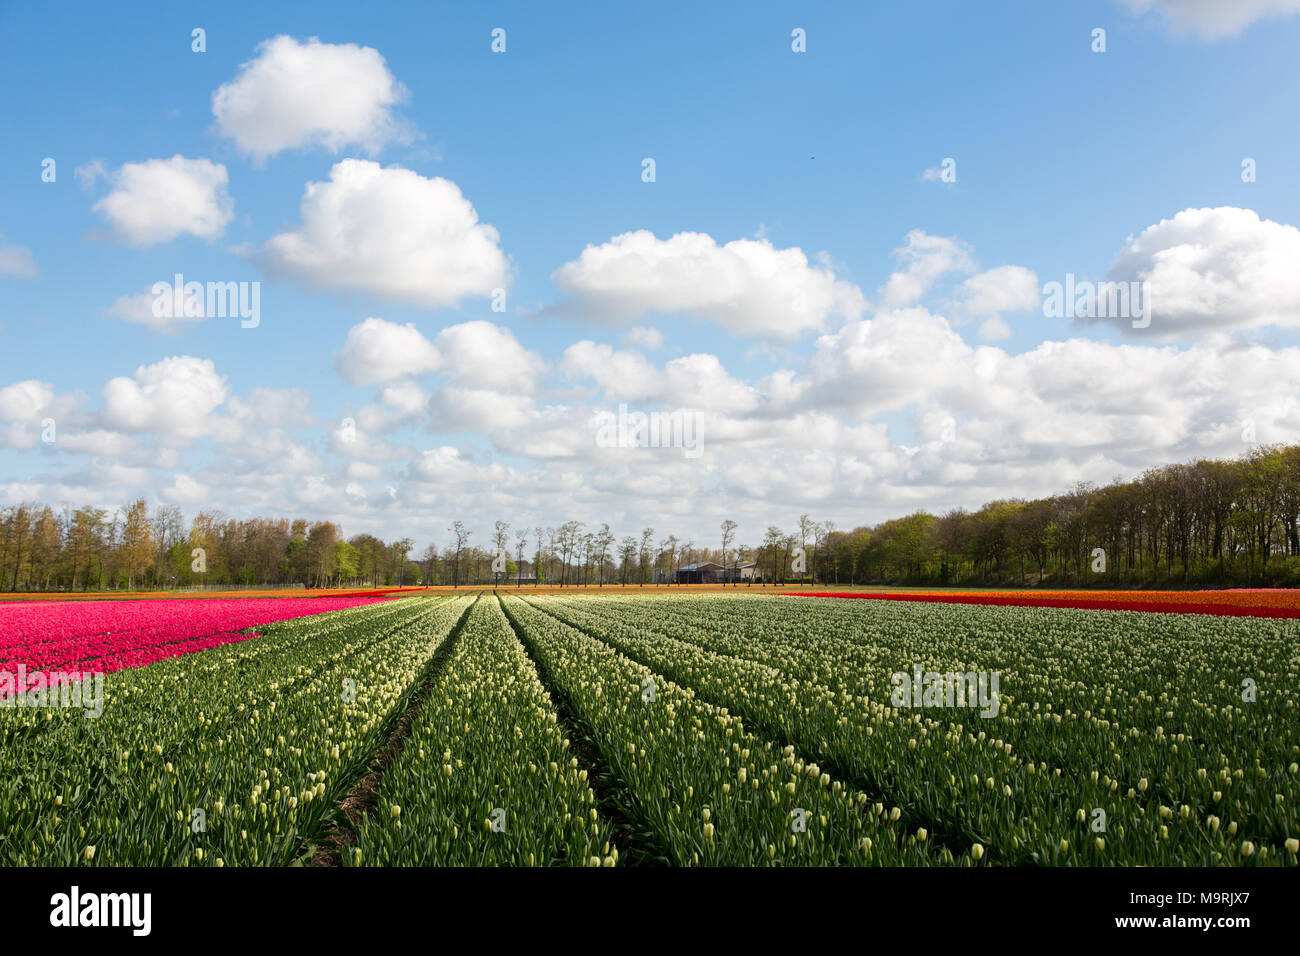 A colourful tulip field in a blue and cloudy sky near the village Lisse in the Netherlands. Stock Photo